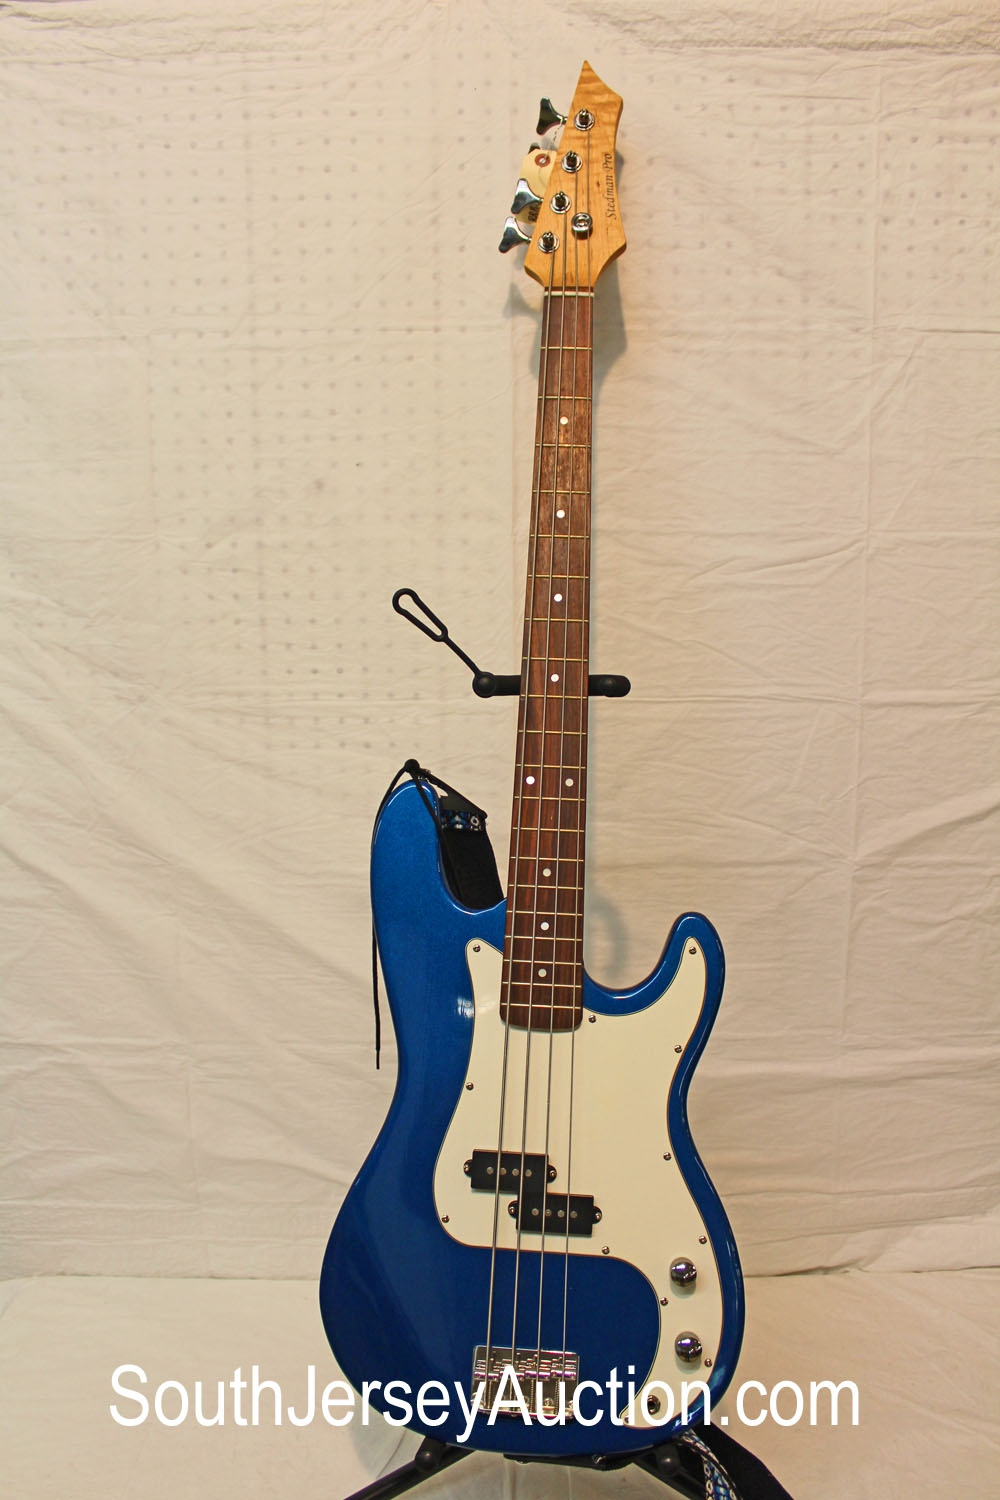 Stedman Pro Base Guitar, in metallic blue, good shape, year unknown, with strap